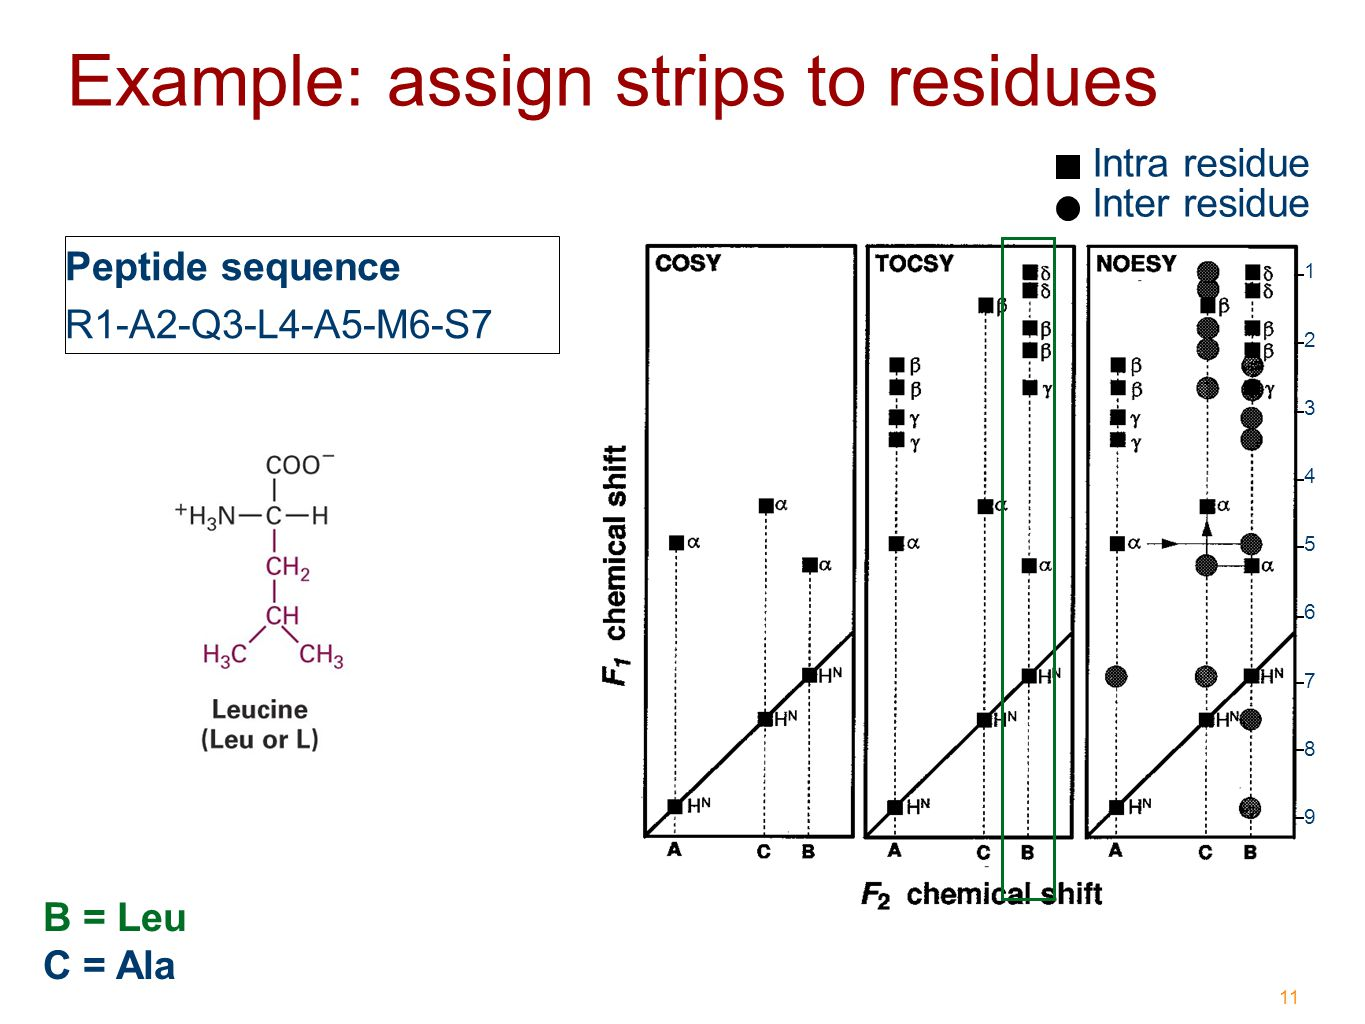 11 Example: assign strips to residues Intra residue Inter residue C = Ala B = Leu Peptide sequence R1-A2-Q3-L4-A5-M6-S7 1 2 3 4 5 6 7 8 9